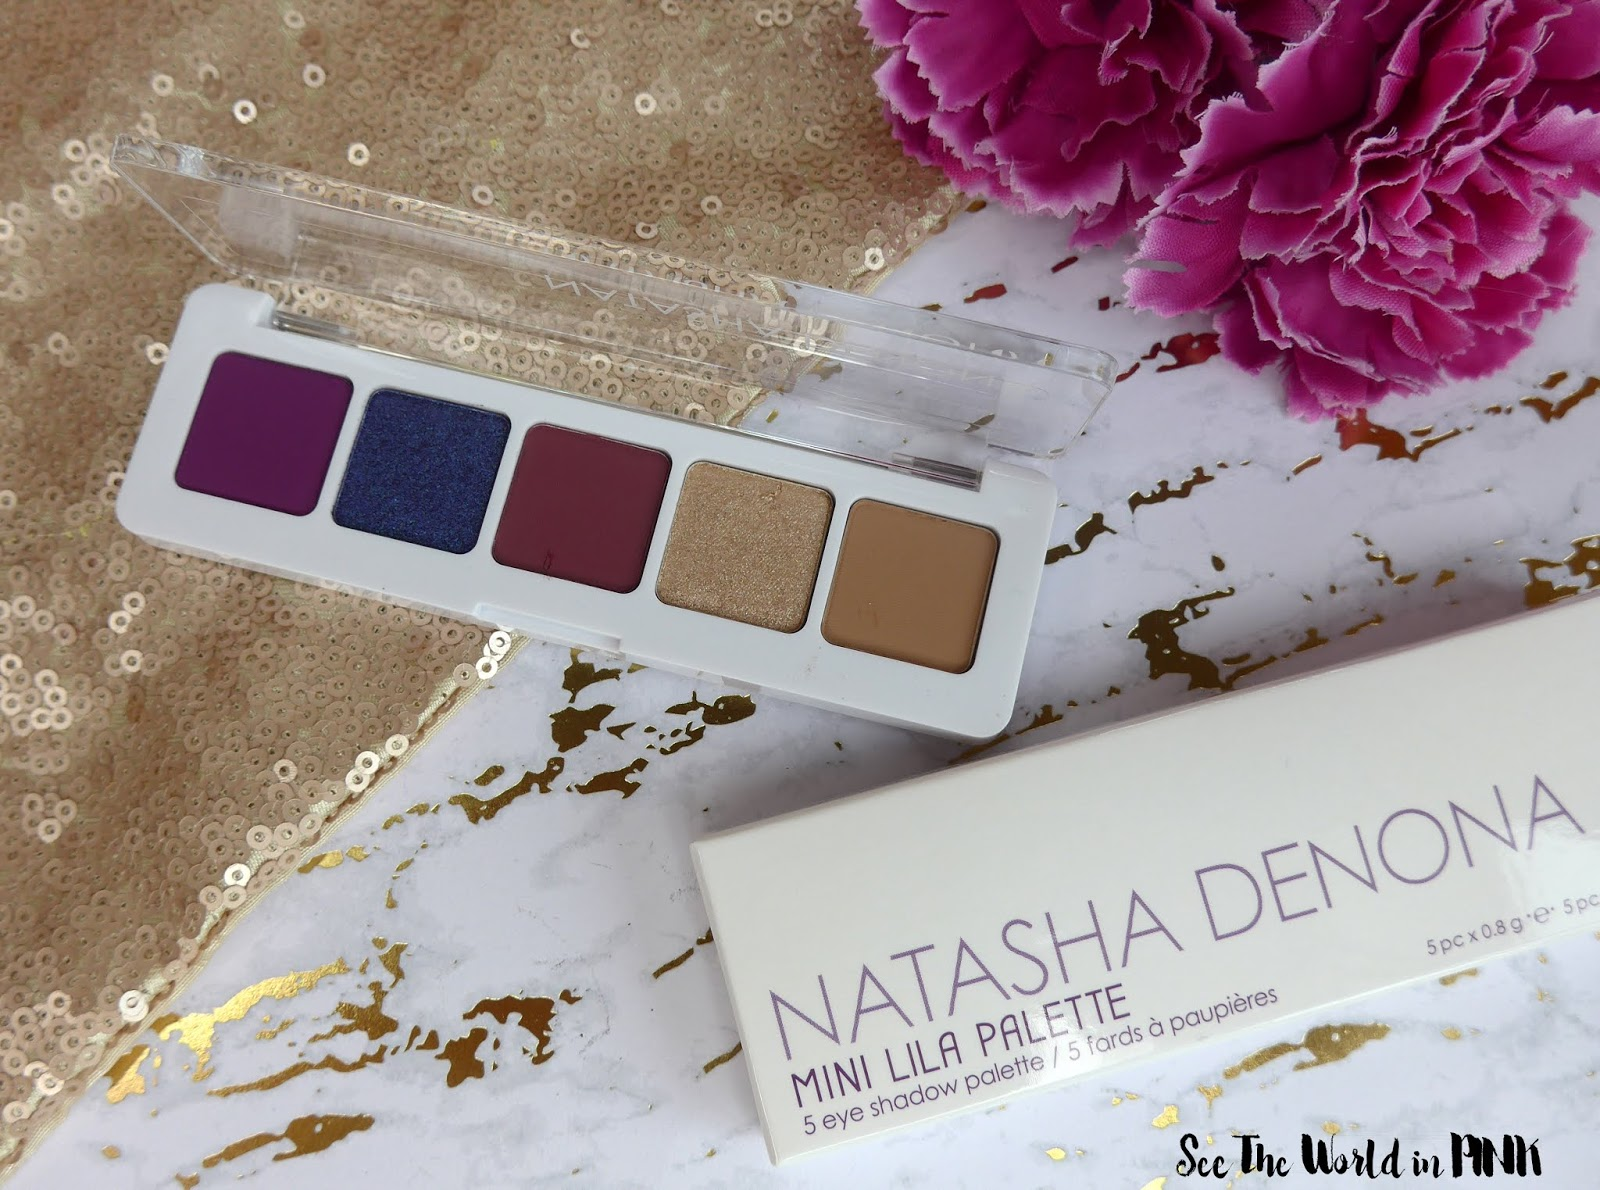 Natasha Denona Mini Lila Eyeshadow Palette - Swatches, Makeup Look and Review!